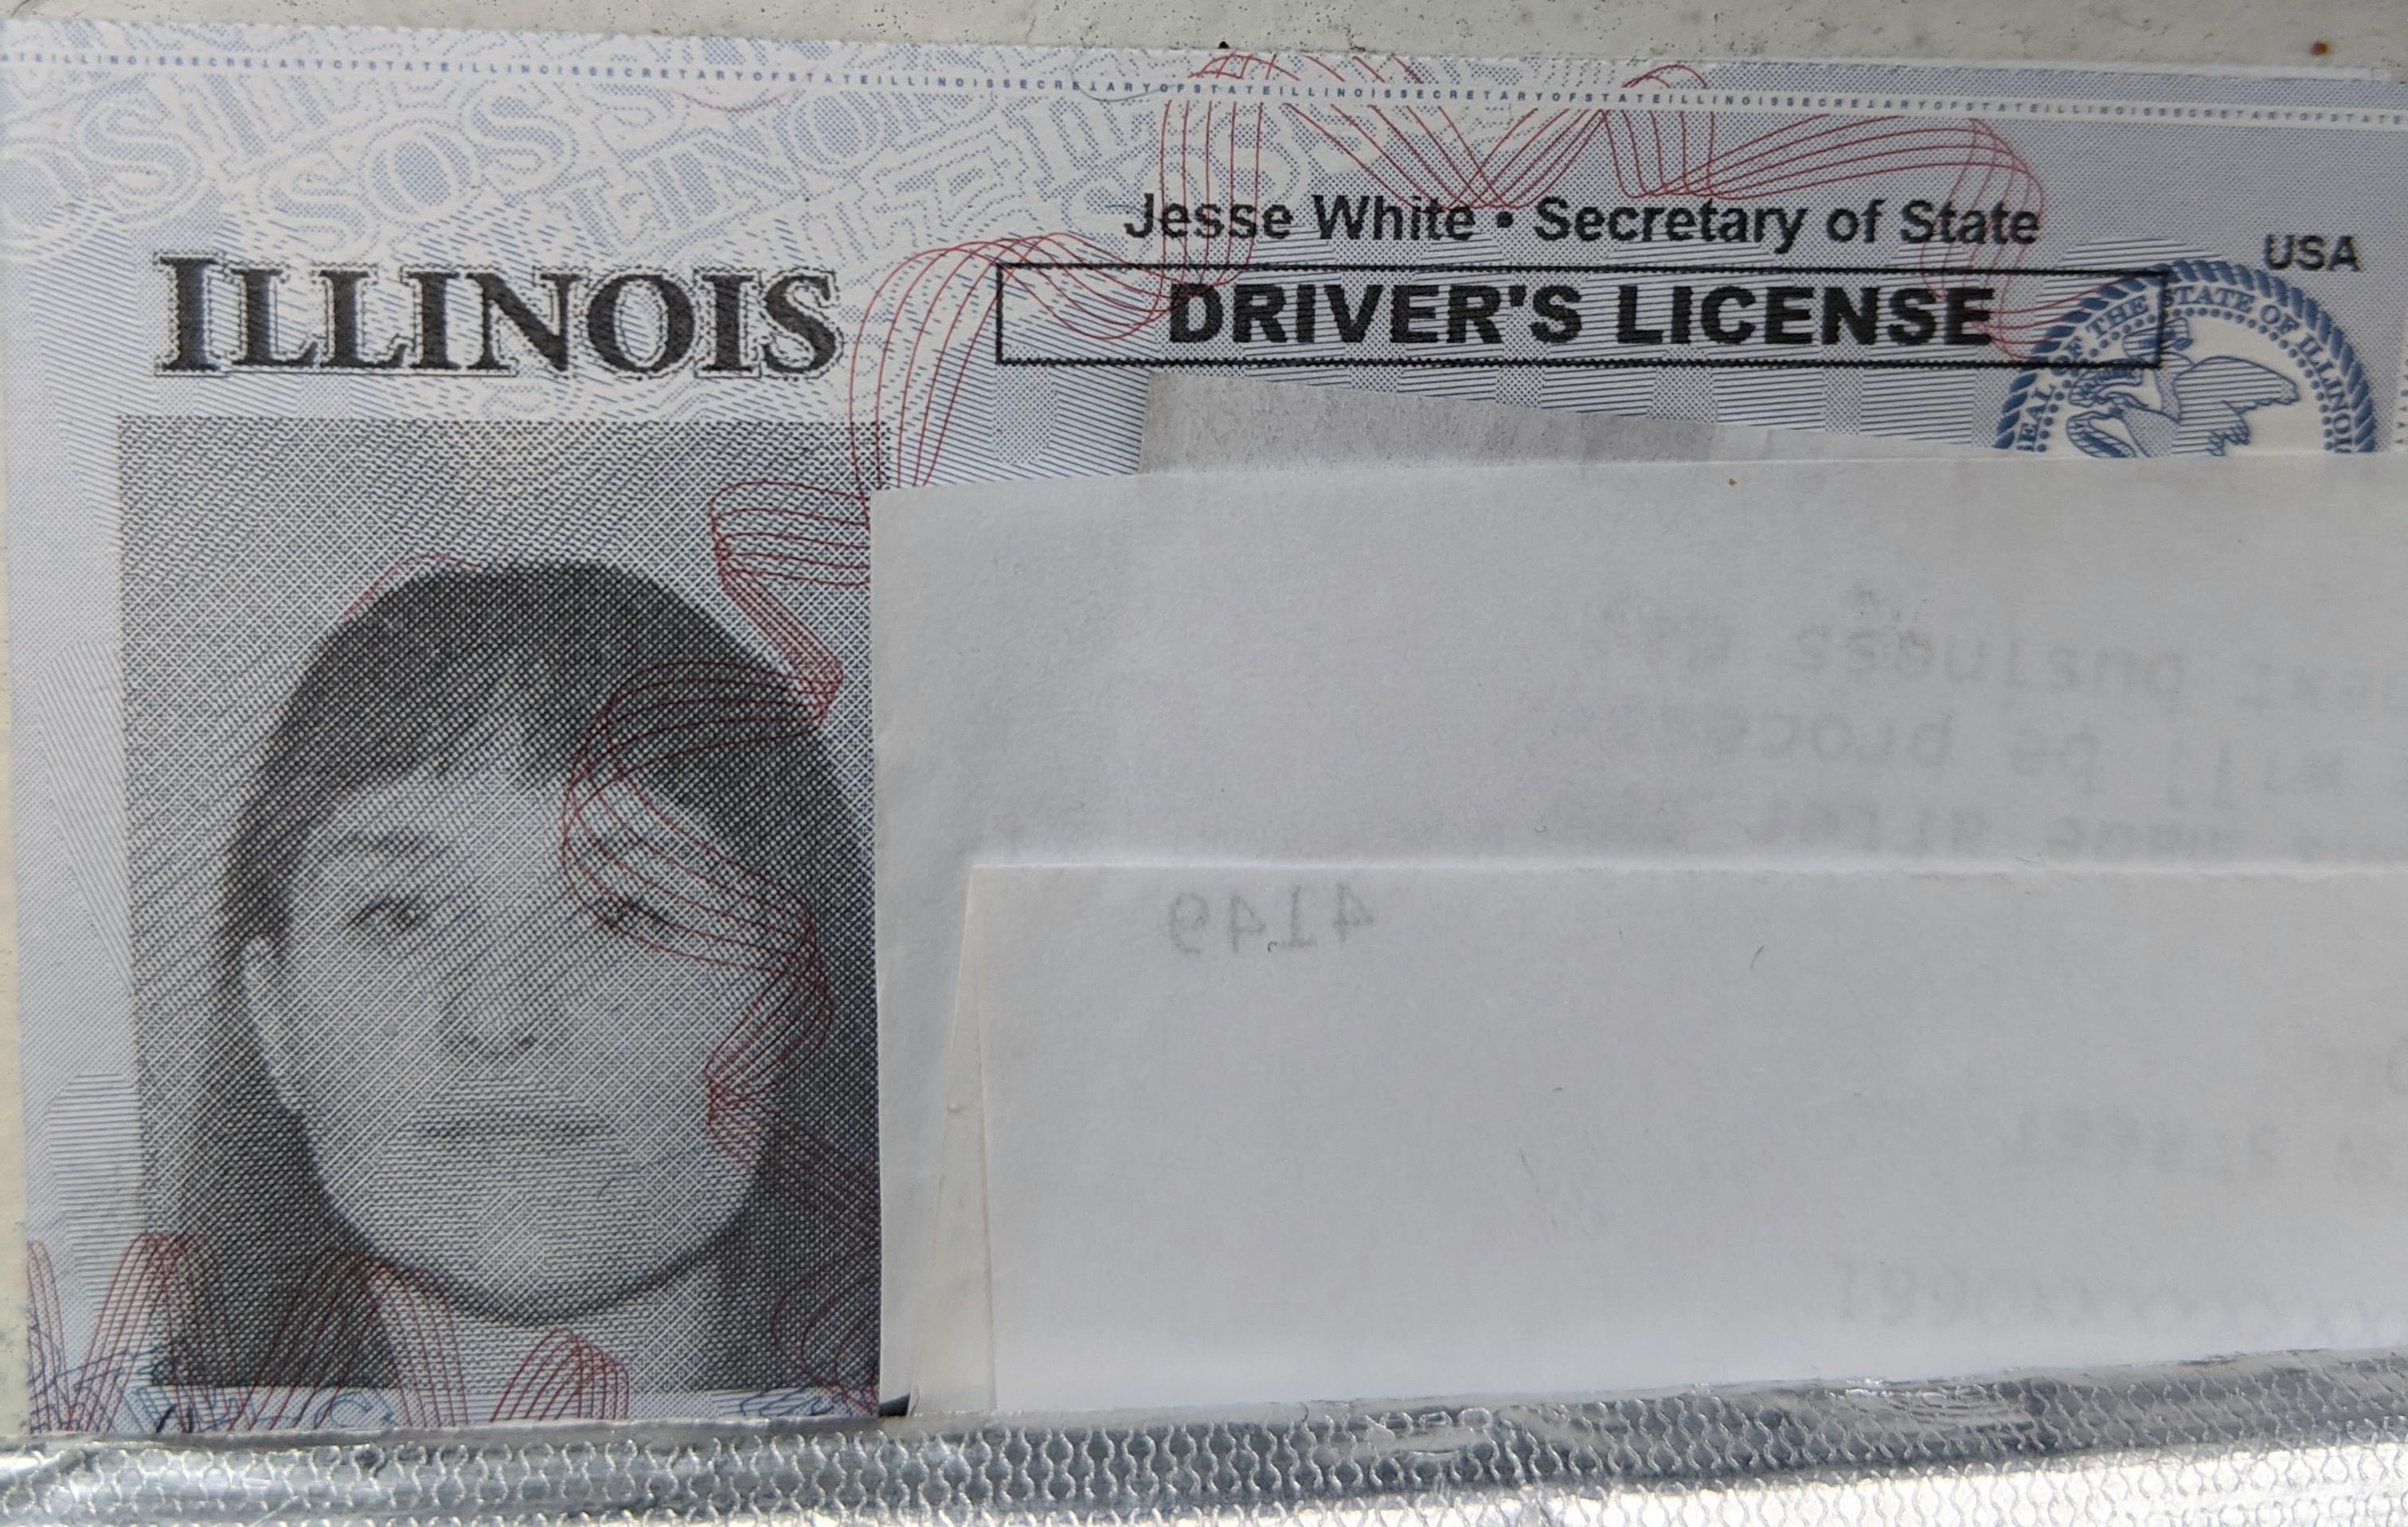 [Image] Got my driver's license at 30 today. It was HARD but it's never too late!